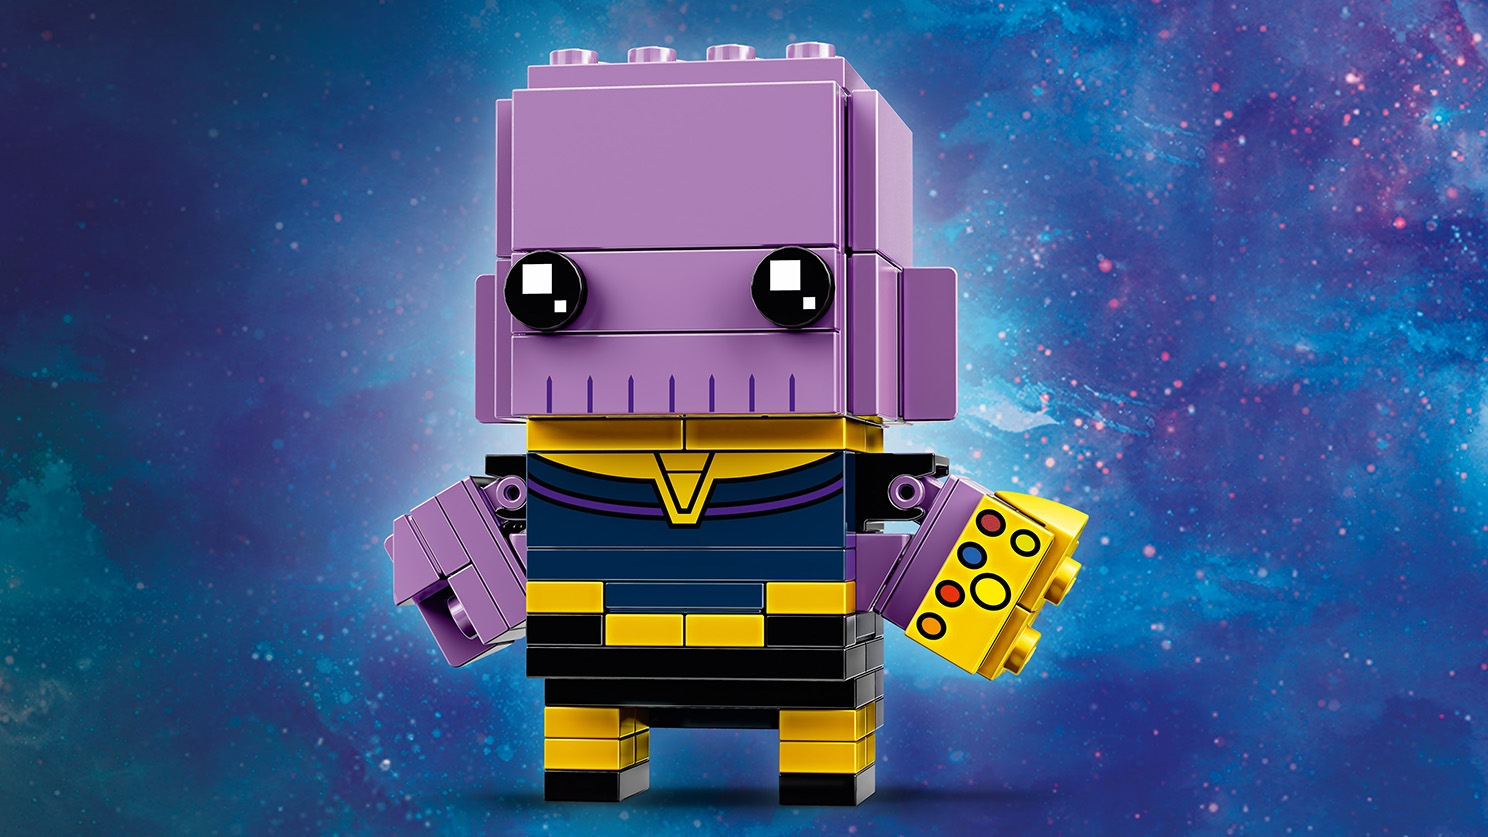 LEGO Brickheadz - 41605 Thanos - Build a LEGO Brickheadz figure of Thanos from the Avengers: Infinity War movie. Check out his purple skin and blue chest armor.